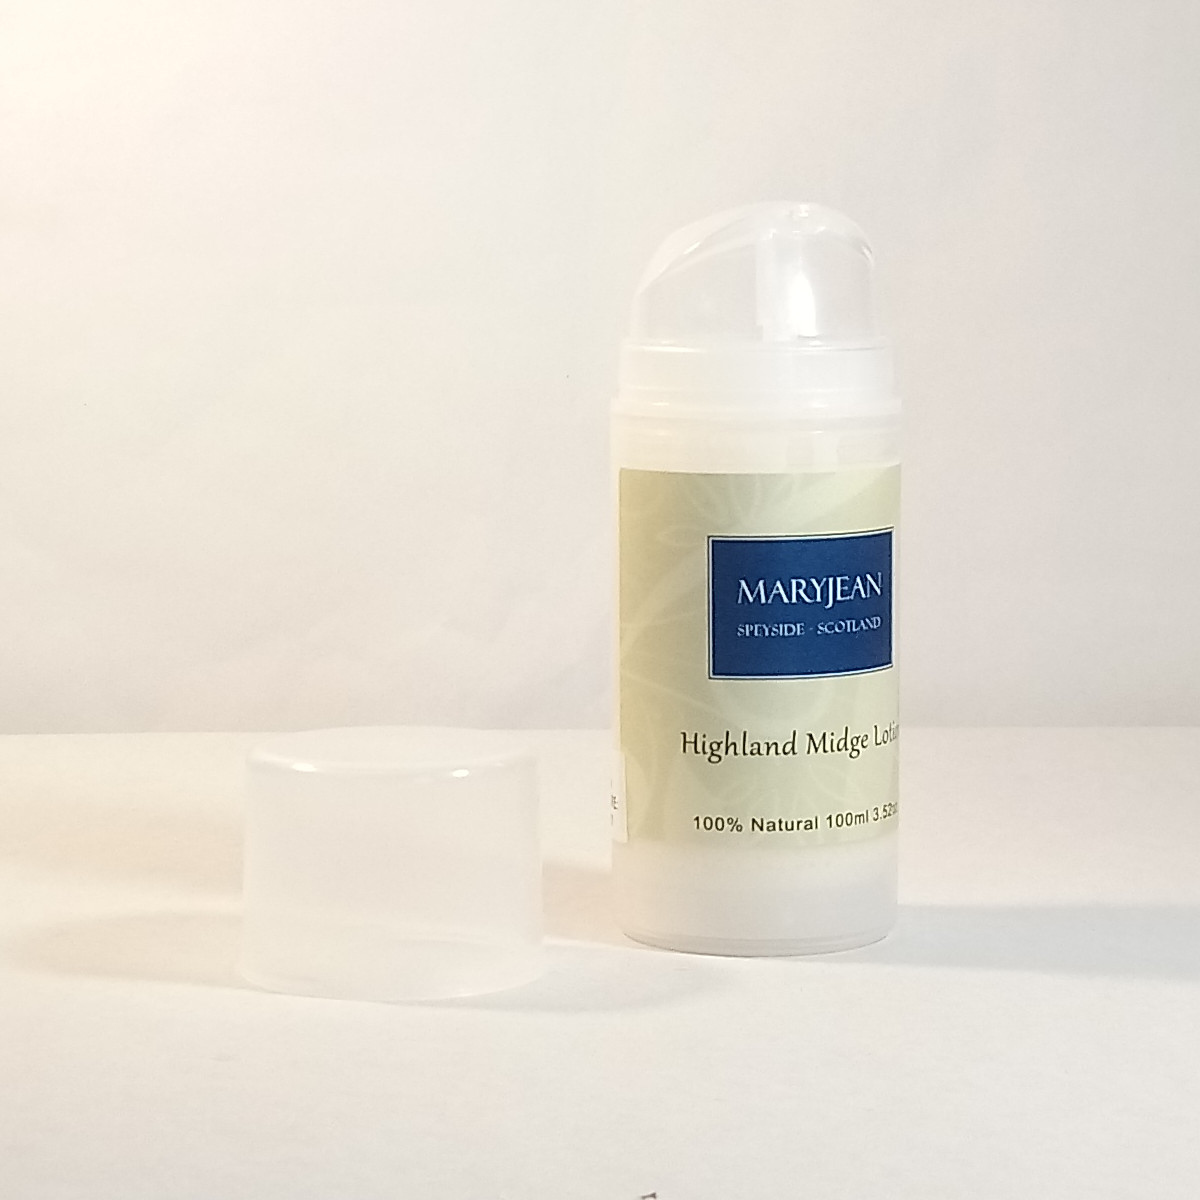 Highland Midge Holiday Travel Insect Repellent Lotion With Jojoba